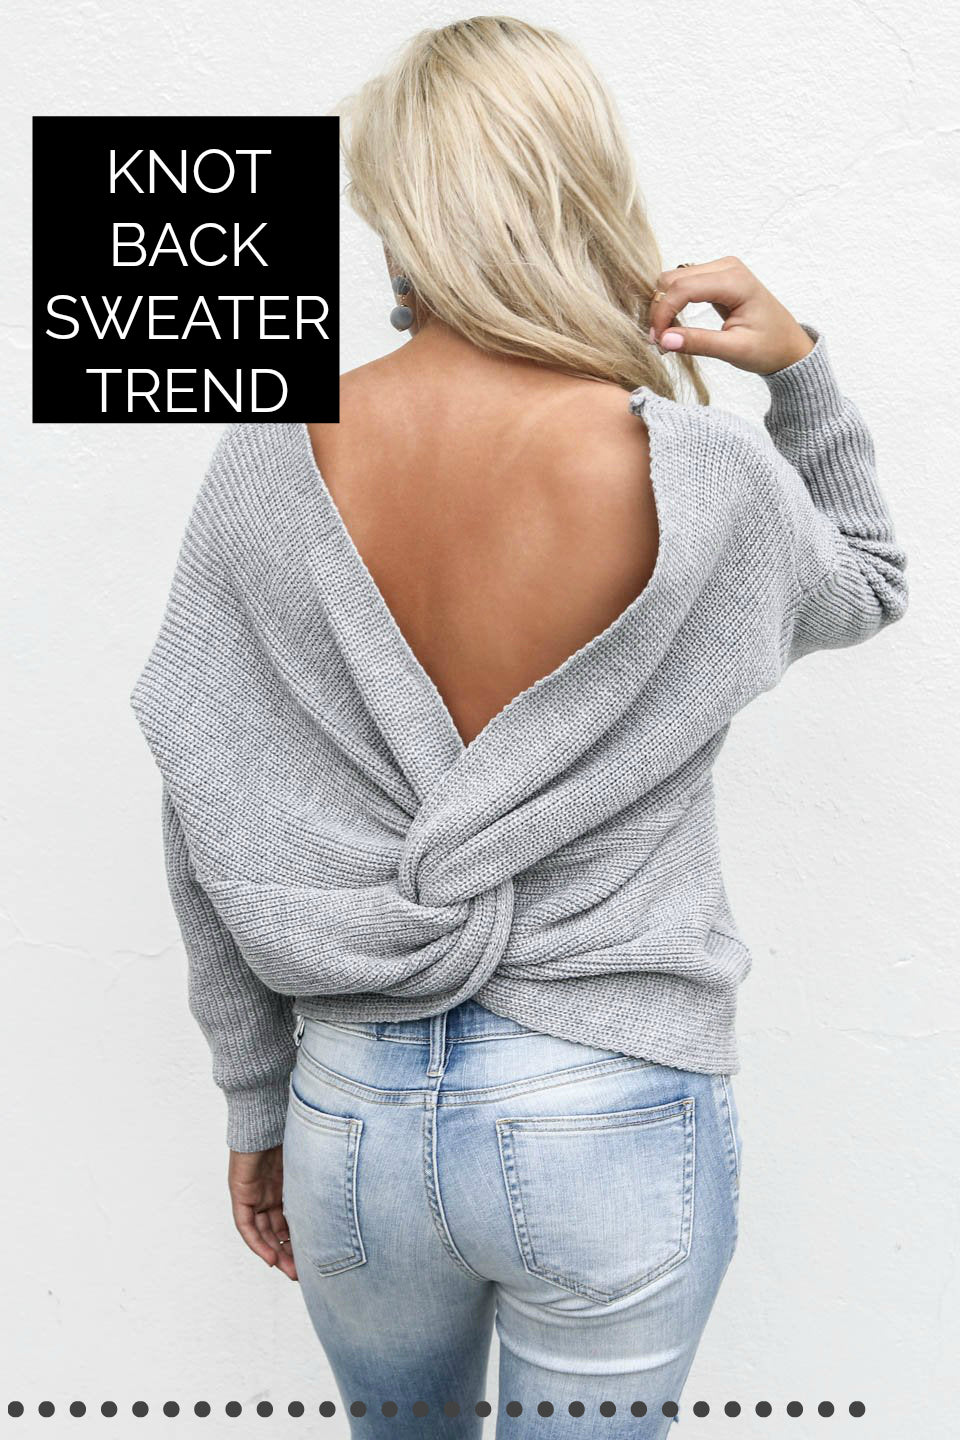 Knot Back Sweater Trend